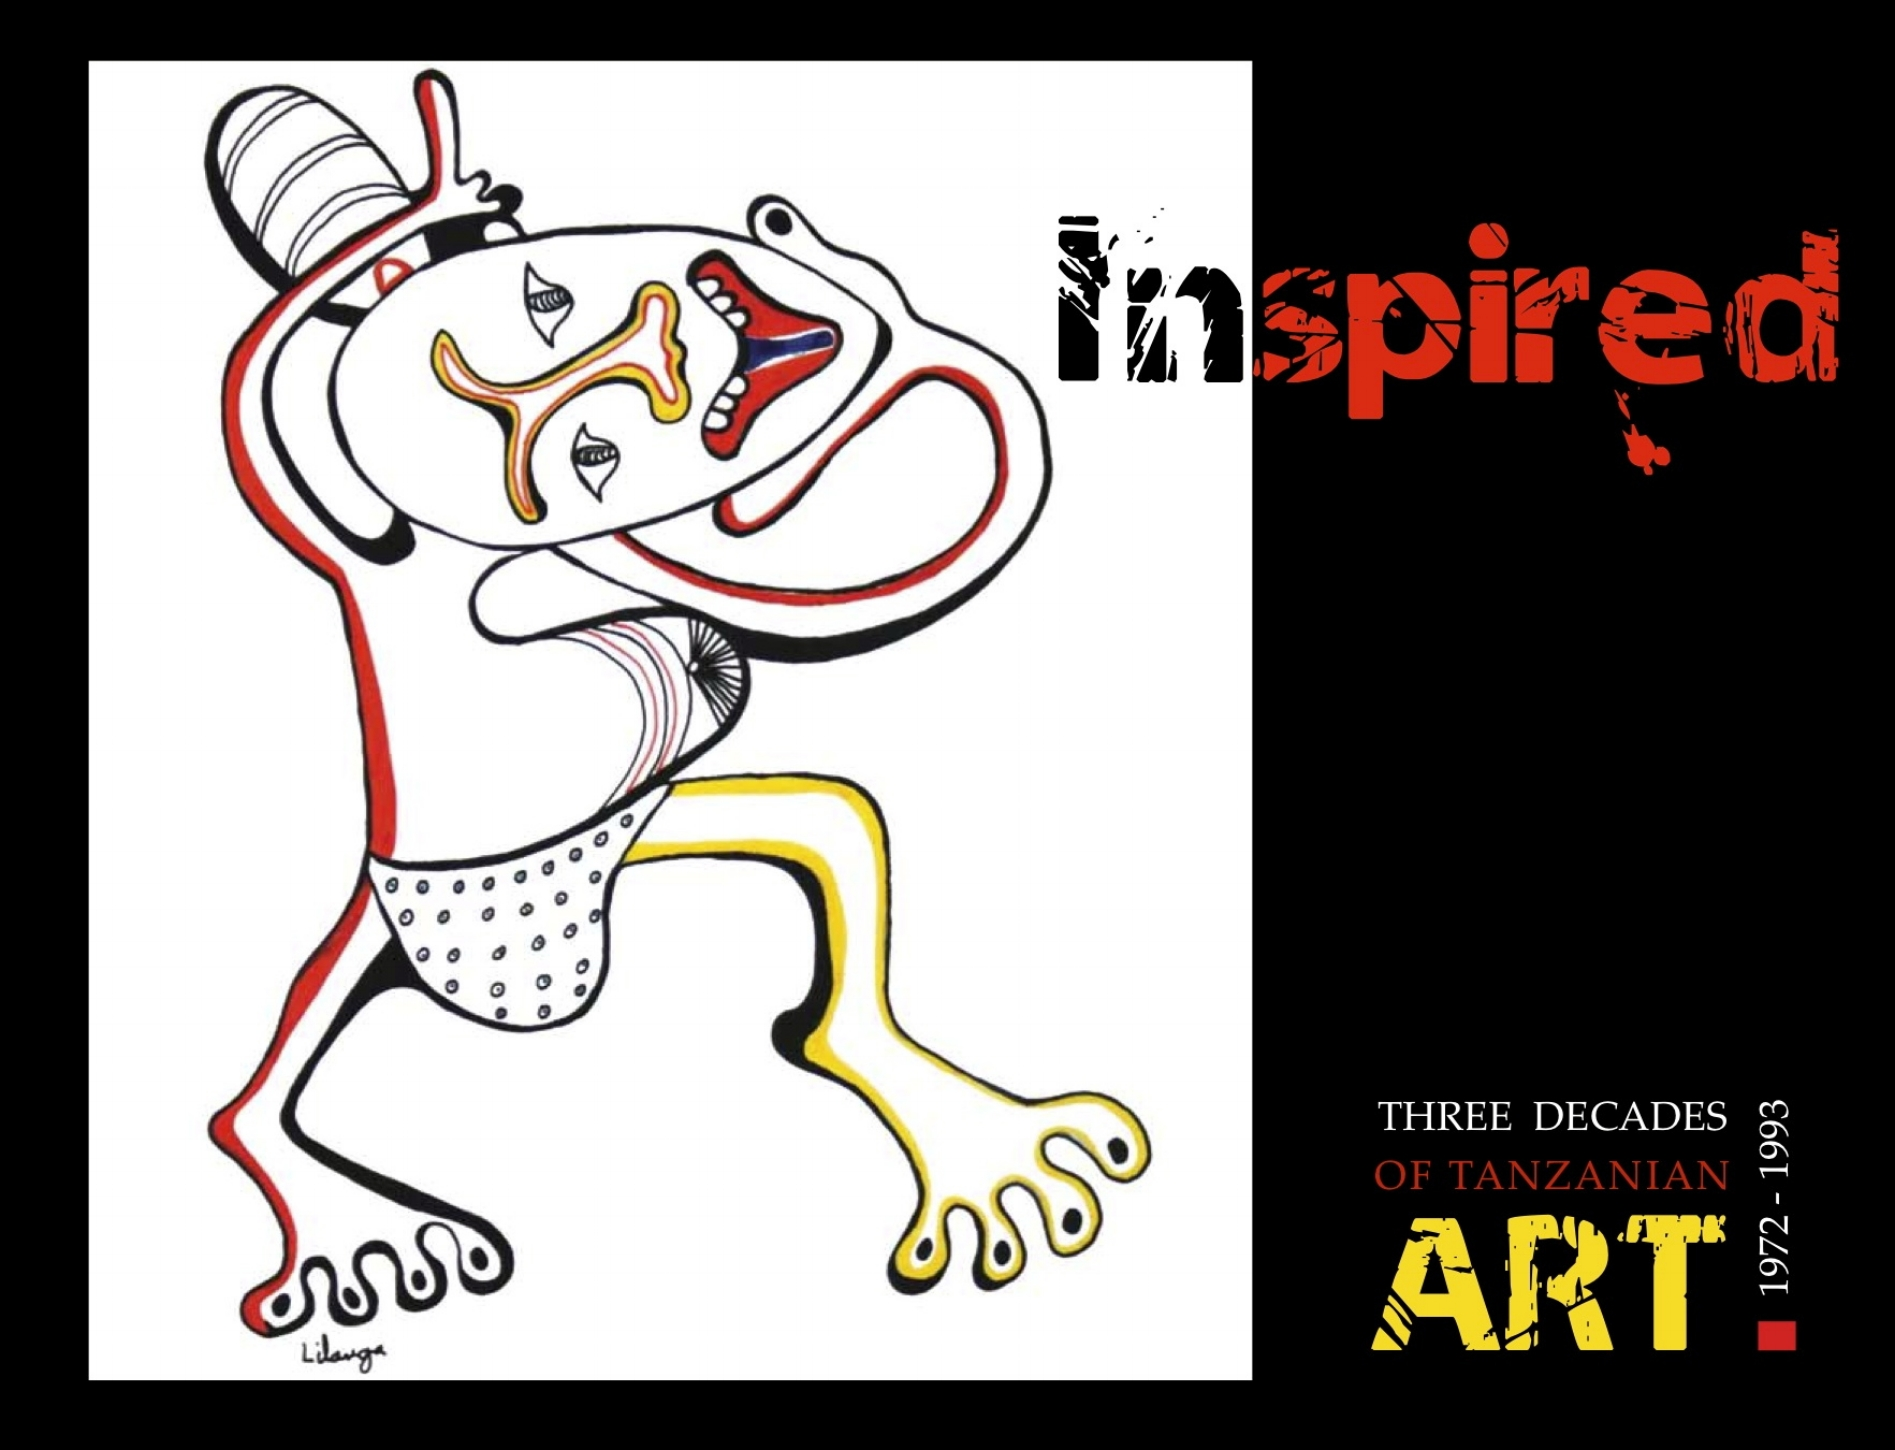 Inspired: Three Decades of Tanzanian Art . Contributor & Editor. (Vijana Vipaji Foundation, 2012).